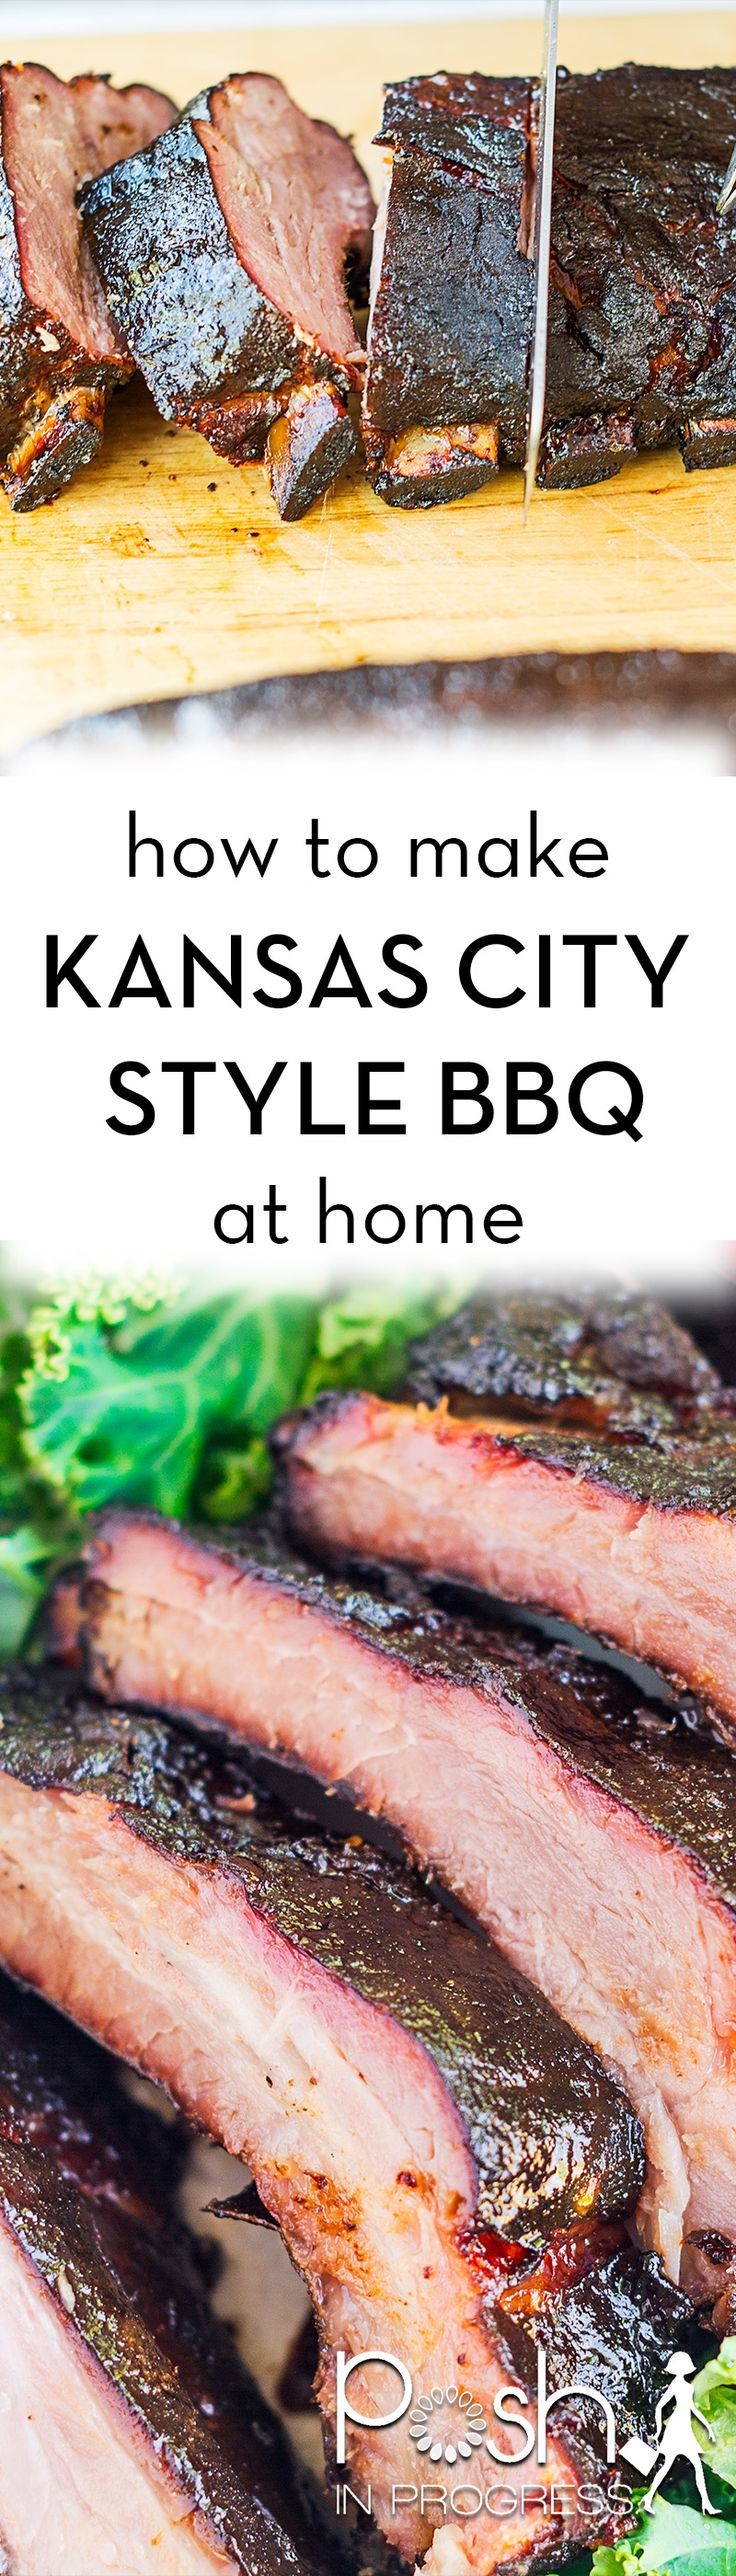 We really missed Kansas City style BBQ so much, we tried to make it ourselves at home on our regular charcoal grill. It turned out great! See how we did it. #GetGrillingAmerica [ad]